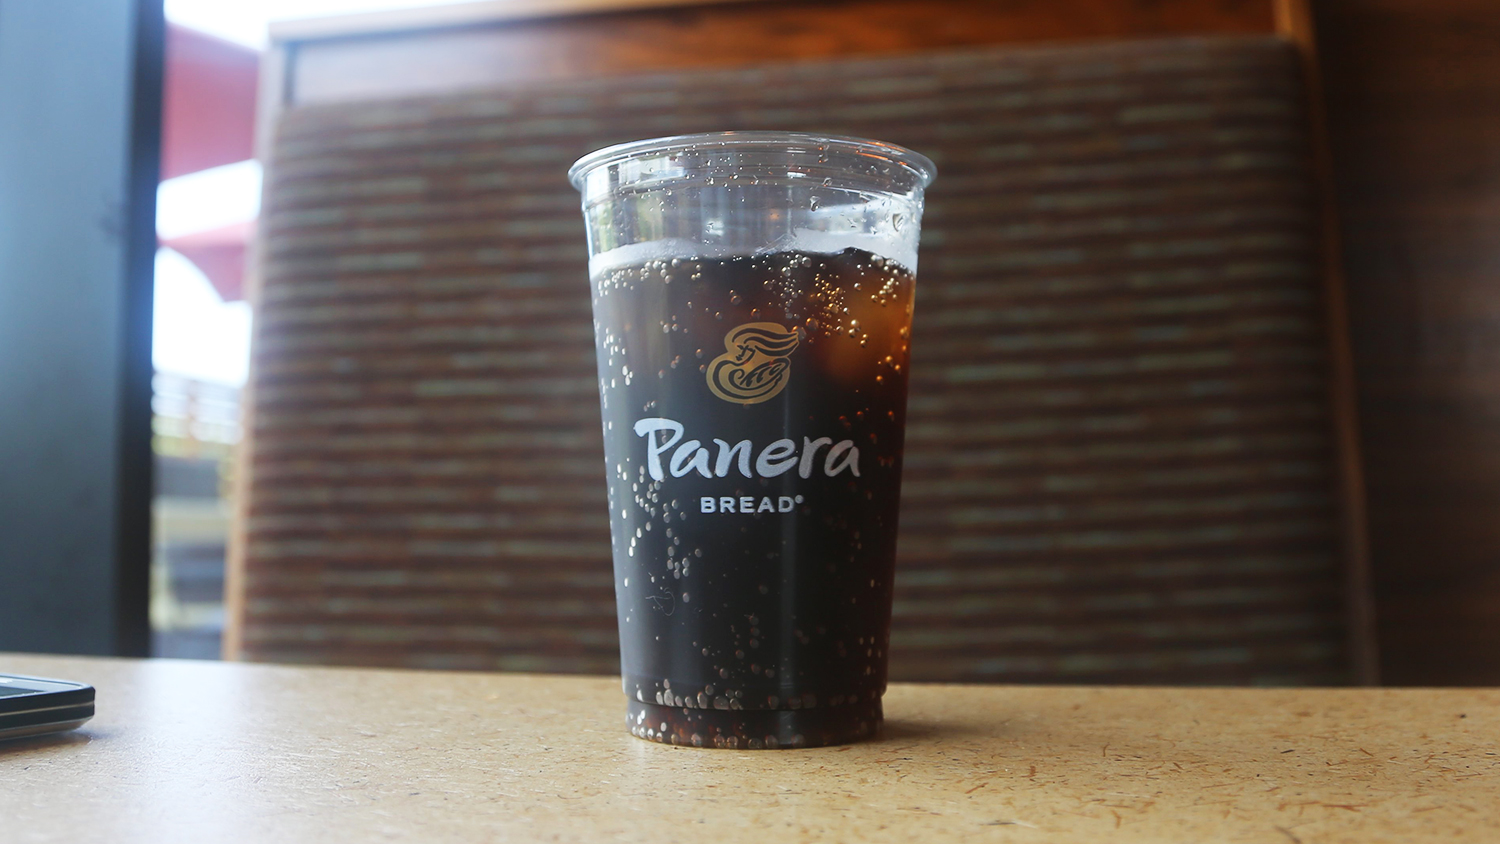 panera bread added sugar in drinks